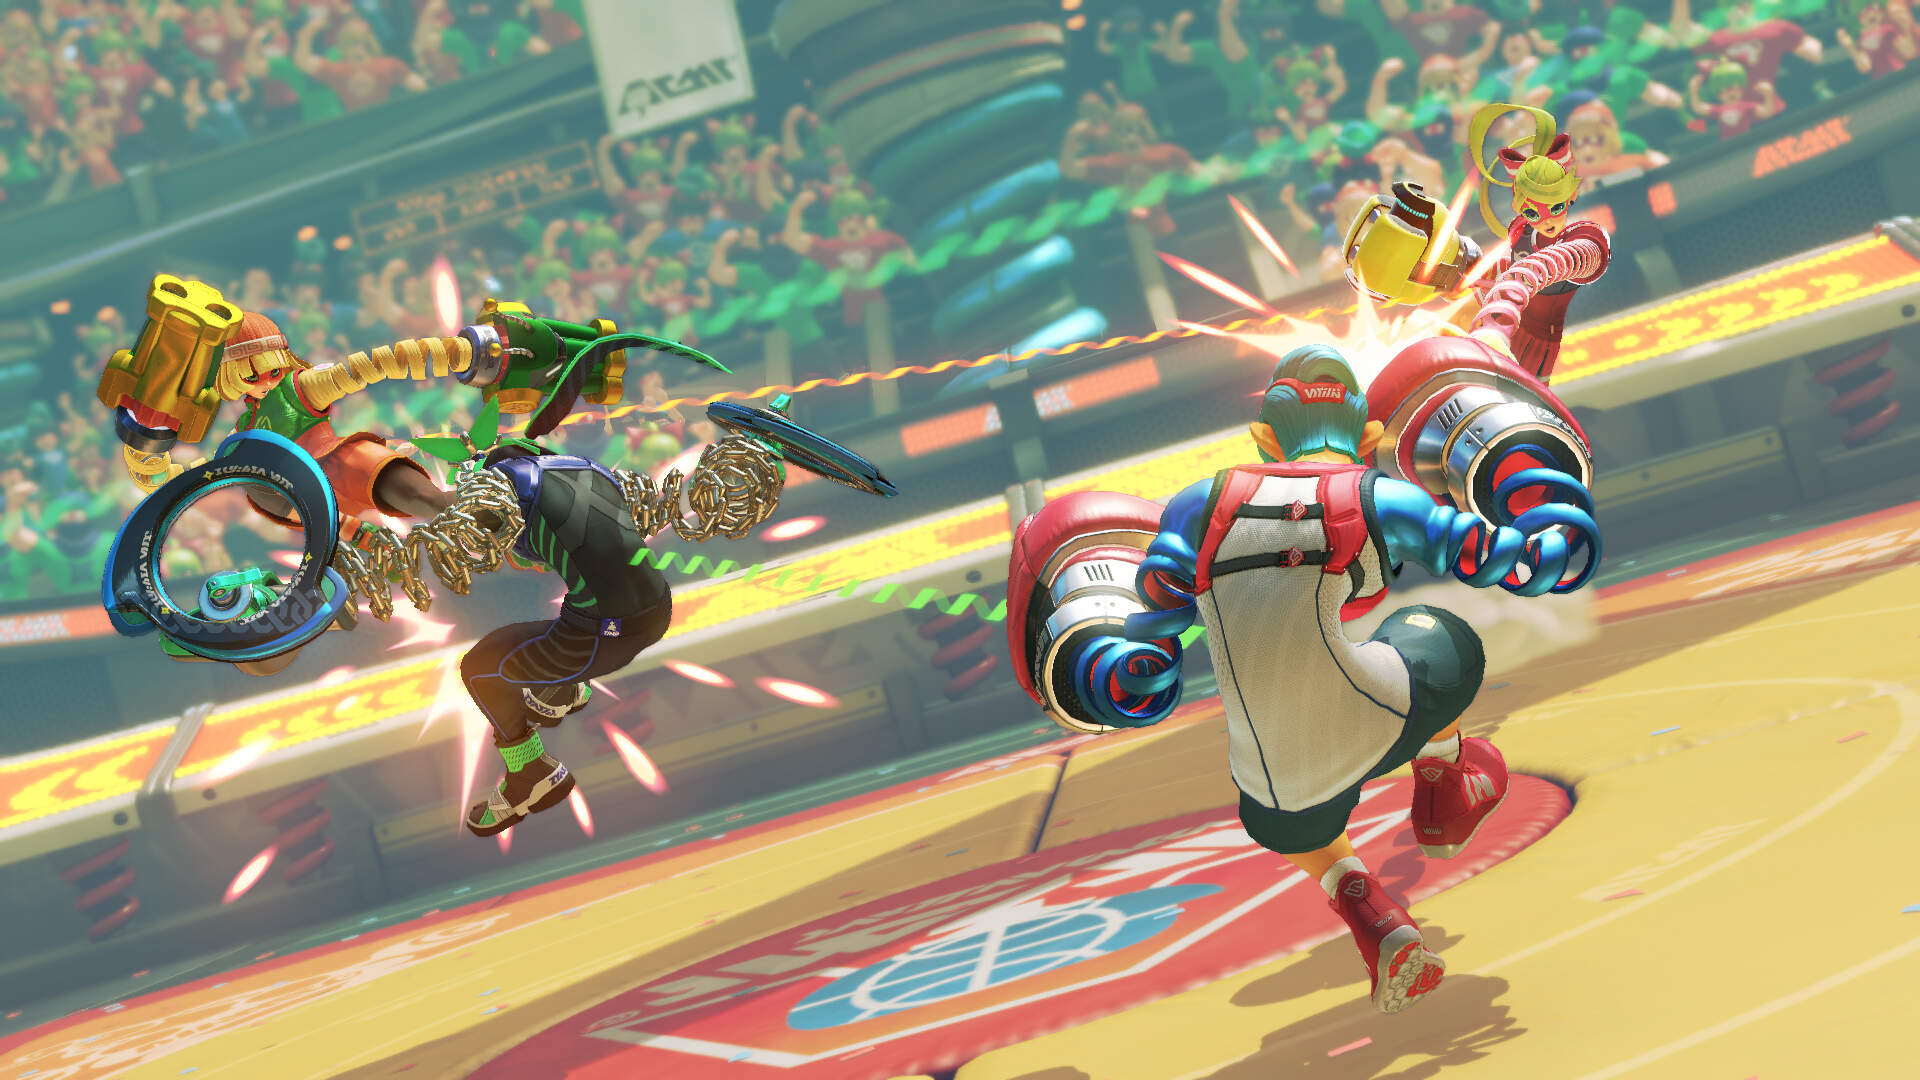 Arms - Reviews, Release Date, Price, Characters, Modes, Unlockables - Everything We Know